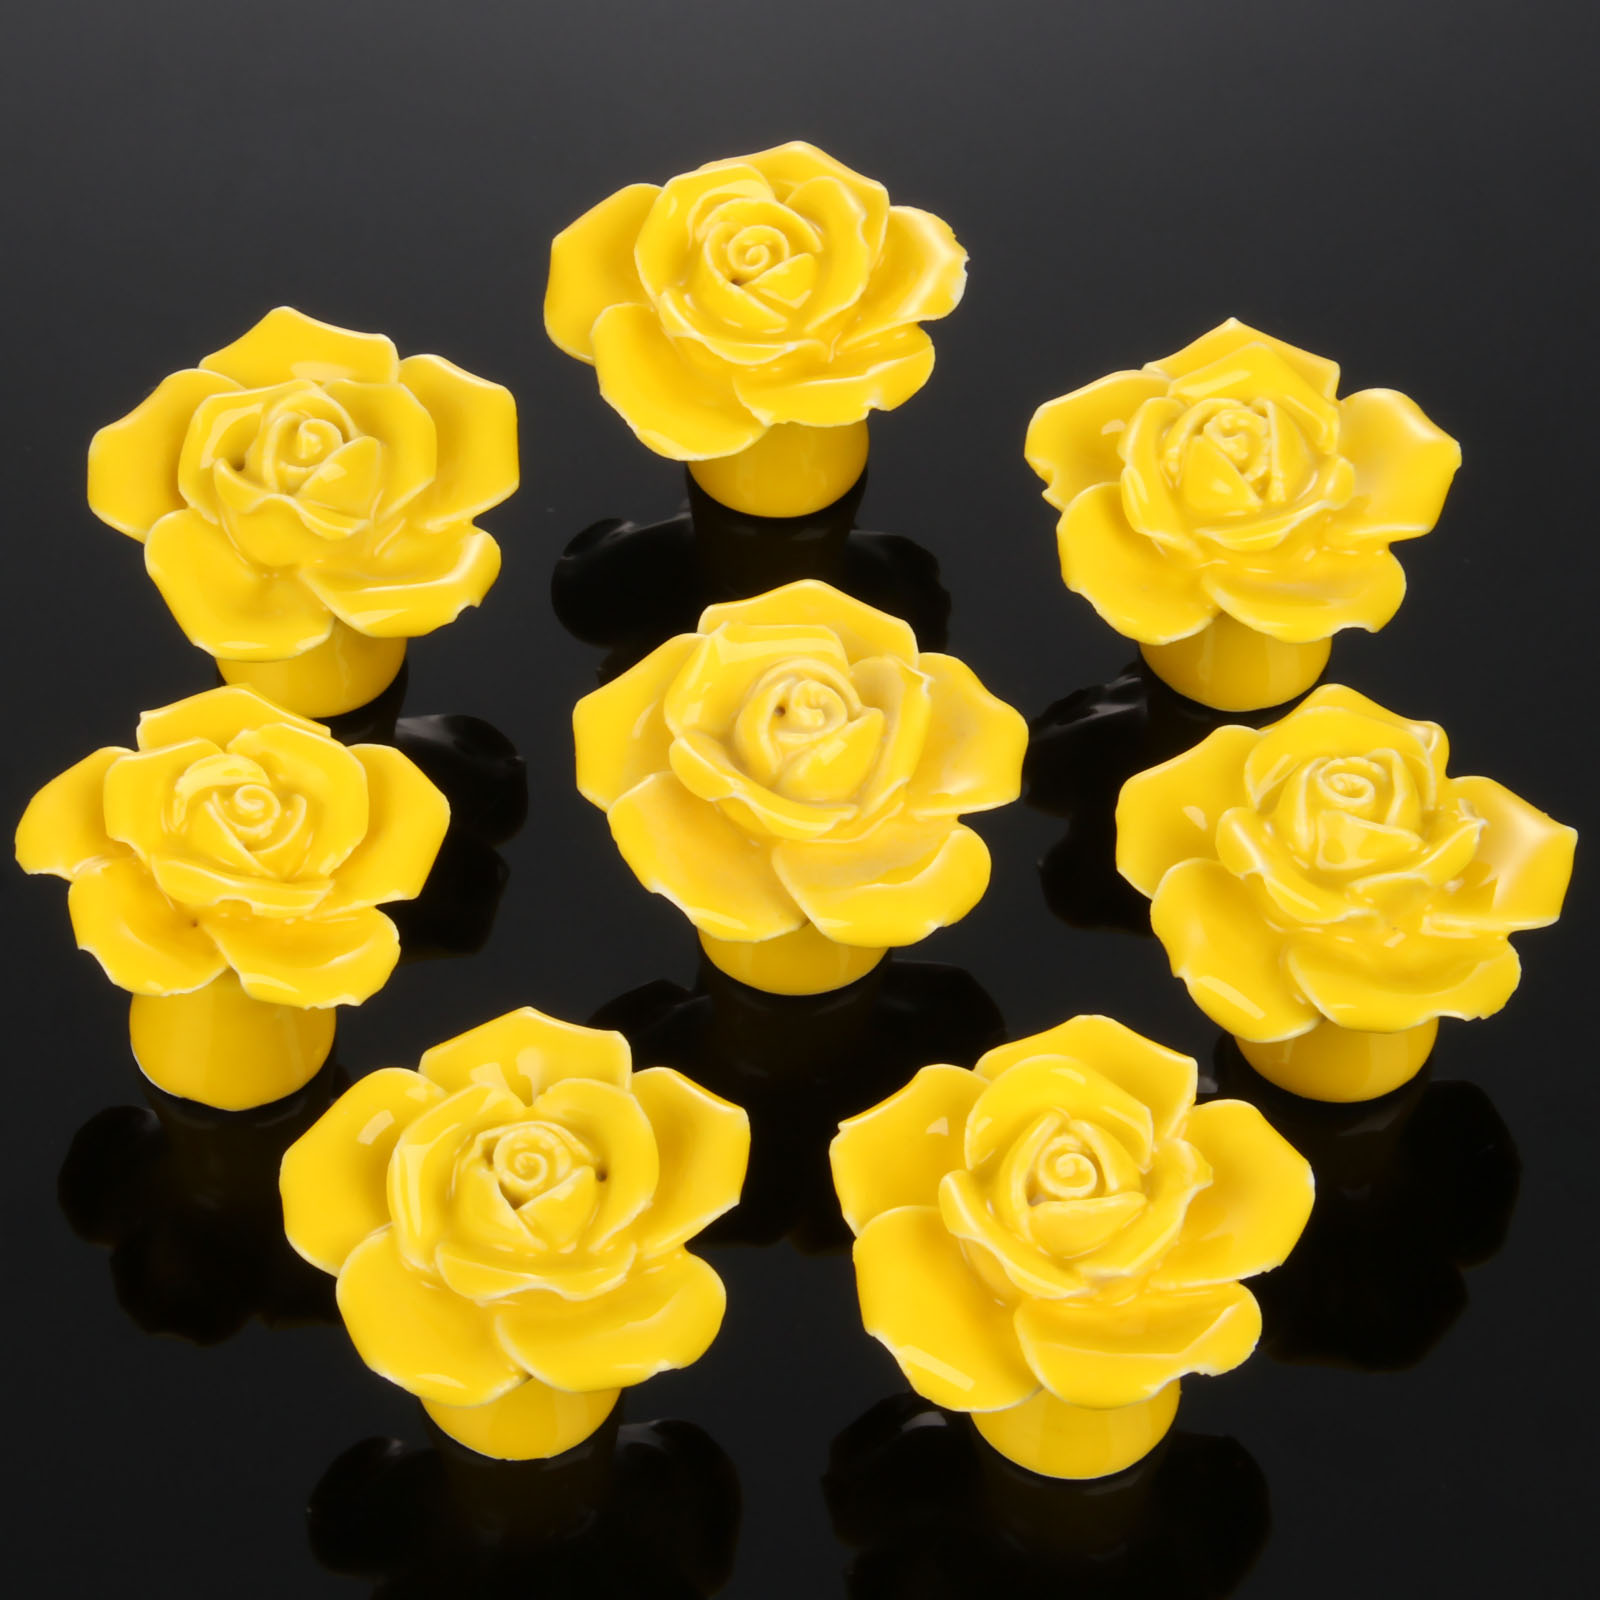 8Pcs Furniture Handles Ceramic Cabinet Knobs and Handles Door Cupboard Drawer Kitchen Pull Handles Furniture Fitting Yellow Rose furniture drawer handles wardrobe door handle and knobs cabinet kitchen hardware pull gold silver long hole spacing c c 96 224mm